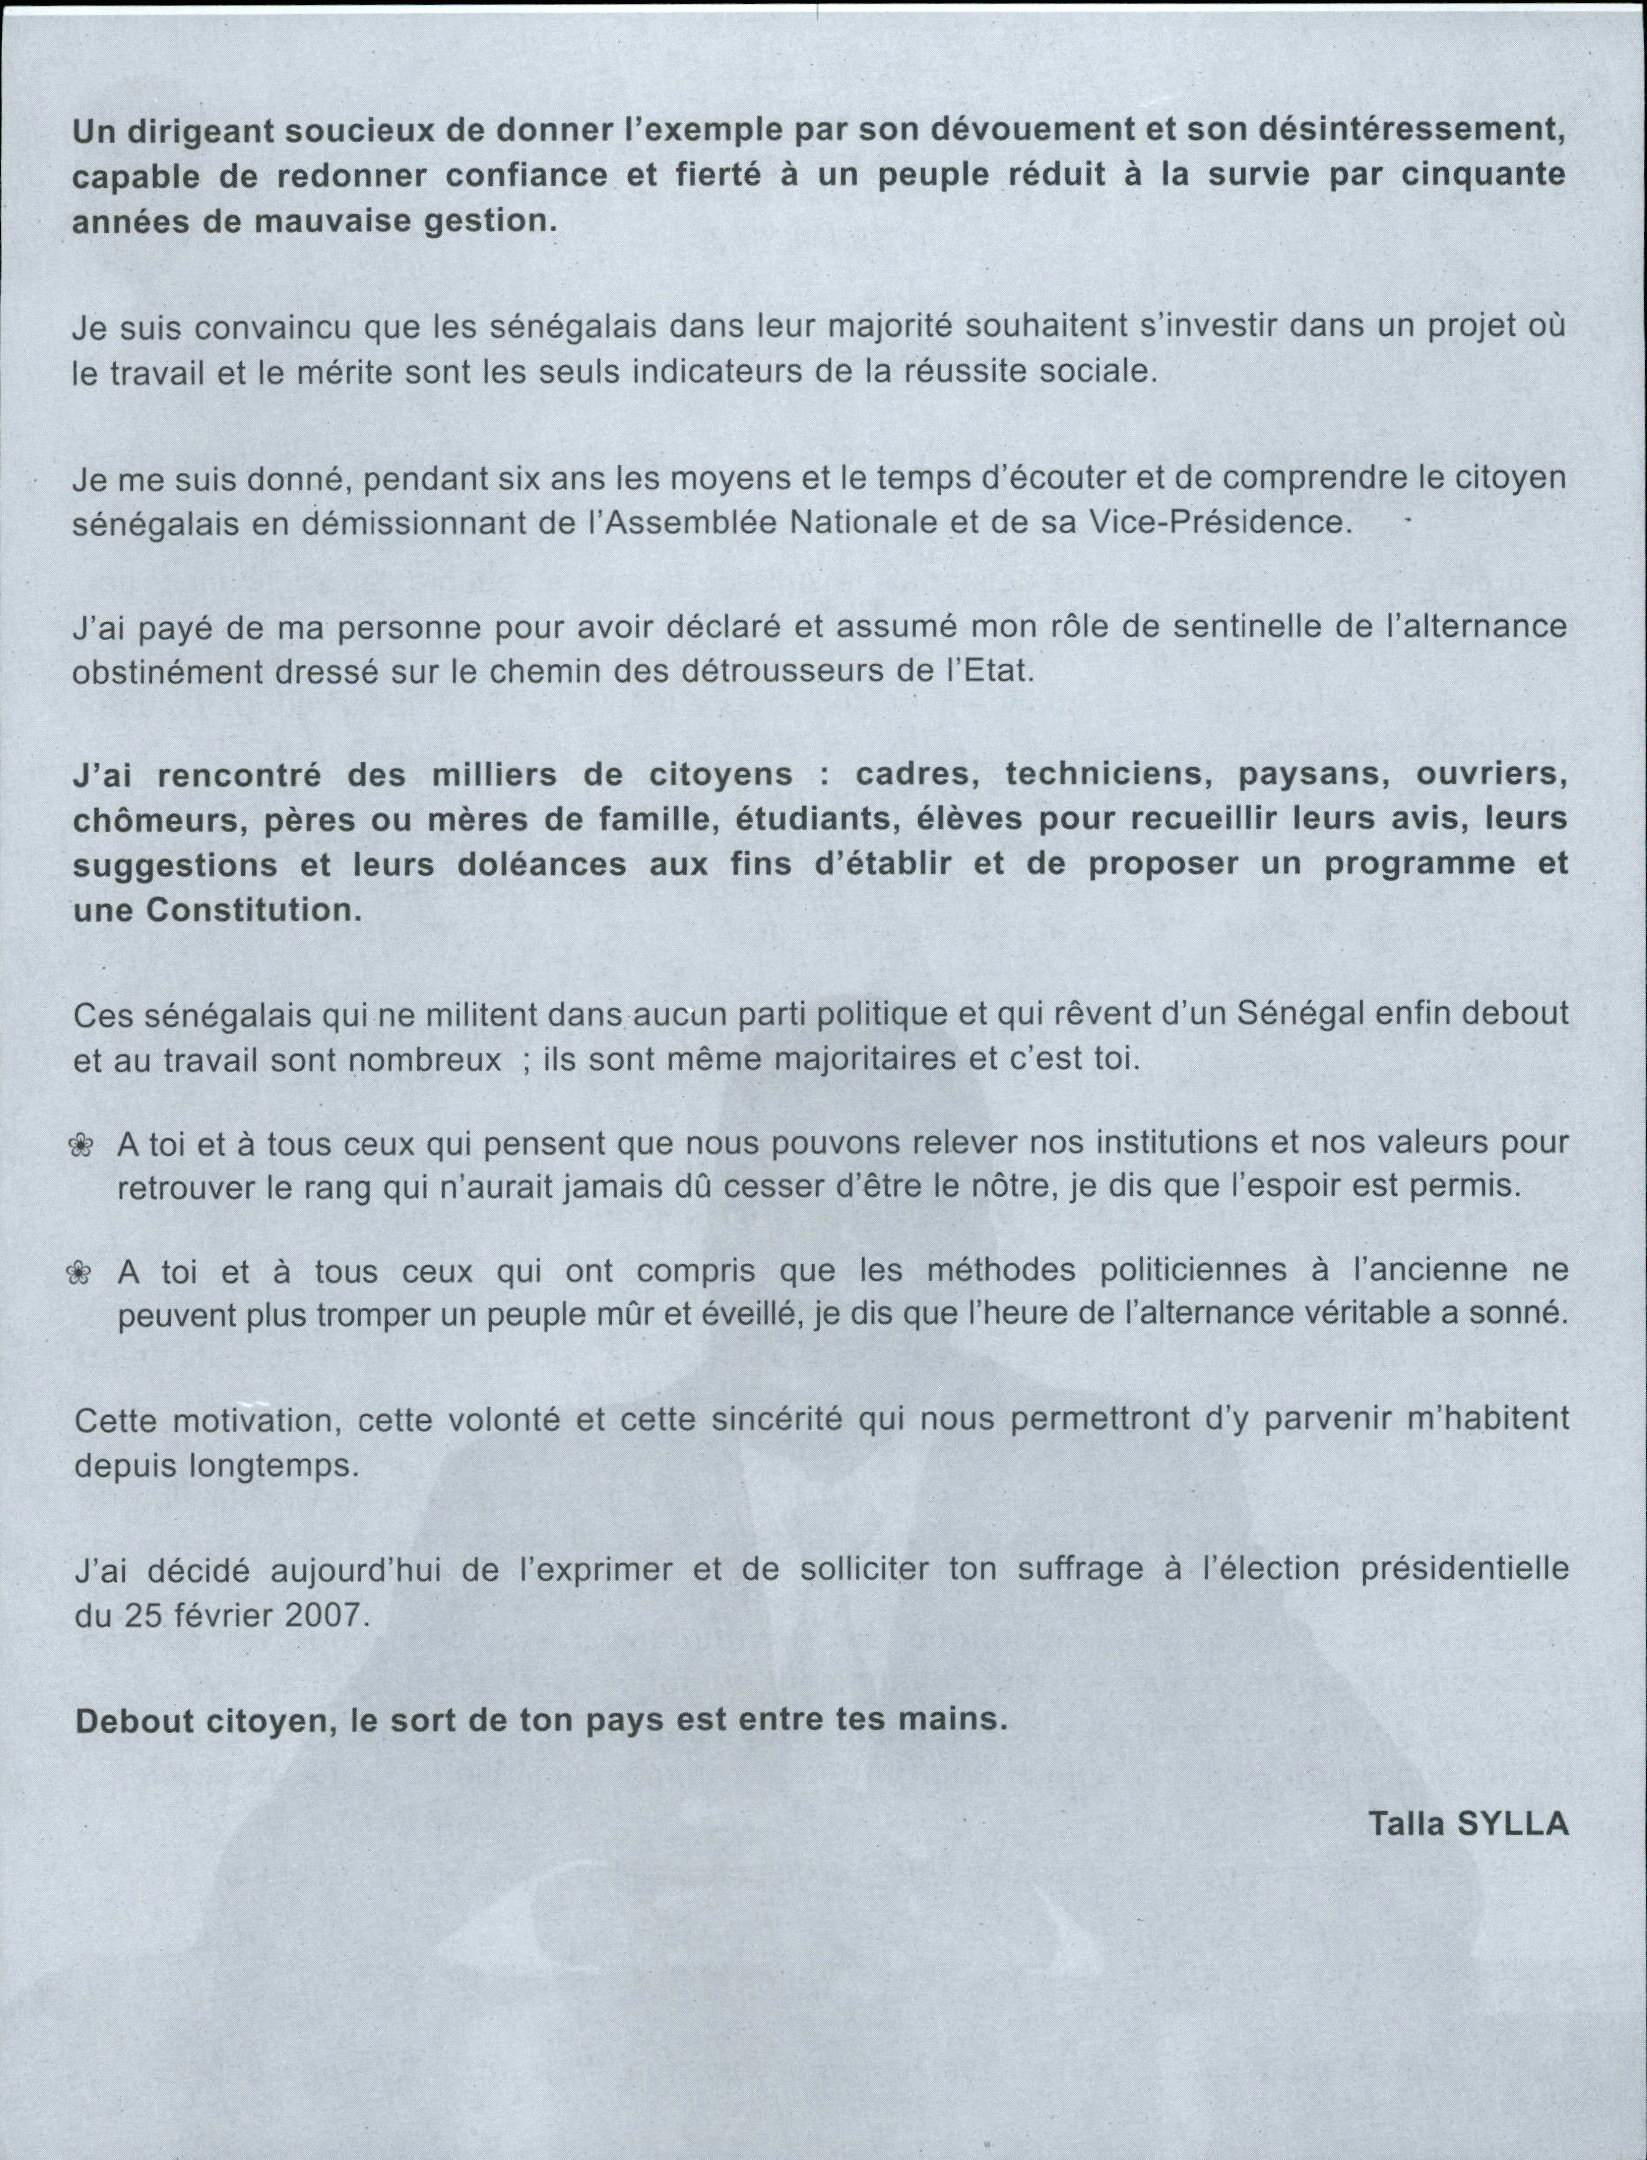 Talla Sylla 2007 Presidential Election campaign pamphlet side 2